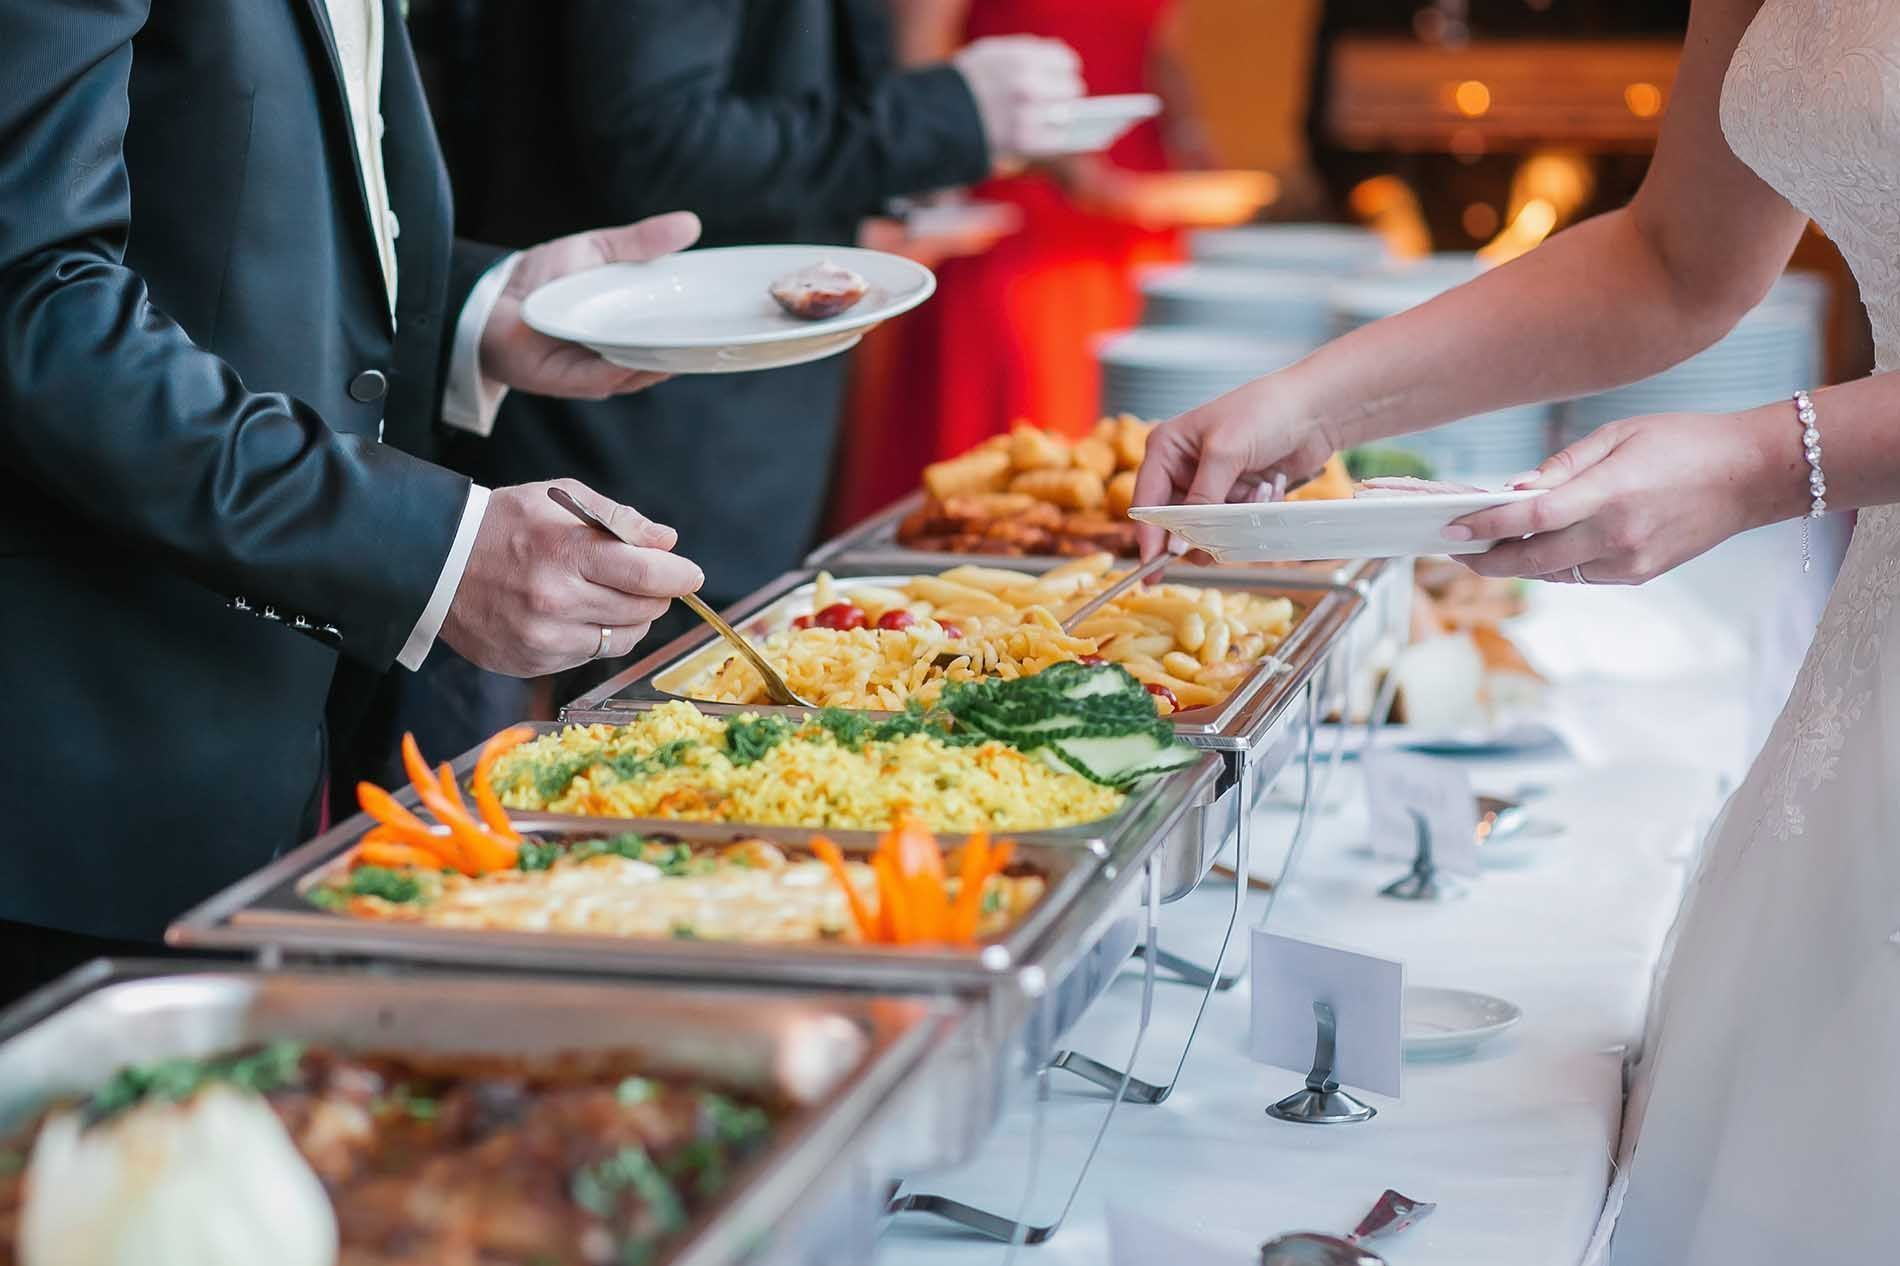 Ayesha S Cuisine Providing Best Catering Service In Karachi In Really Affordable Price So Dont Go Any Where W In 2020 Wedding Buffet Food Buffet Food Party Food Buffet